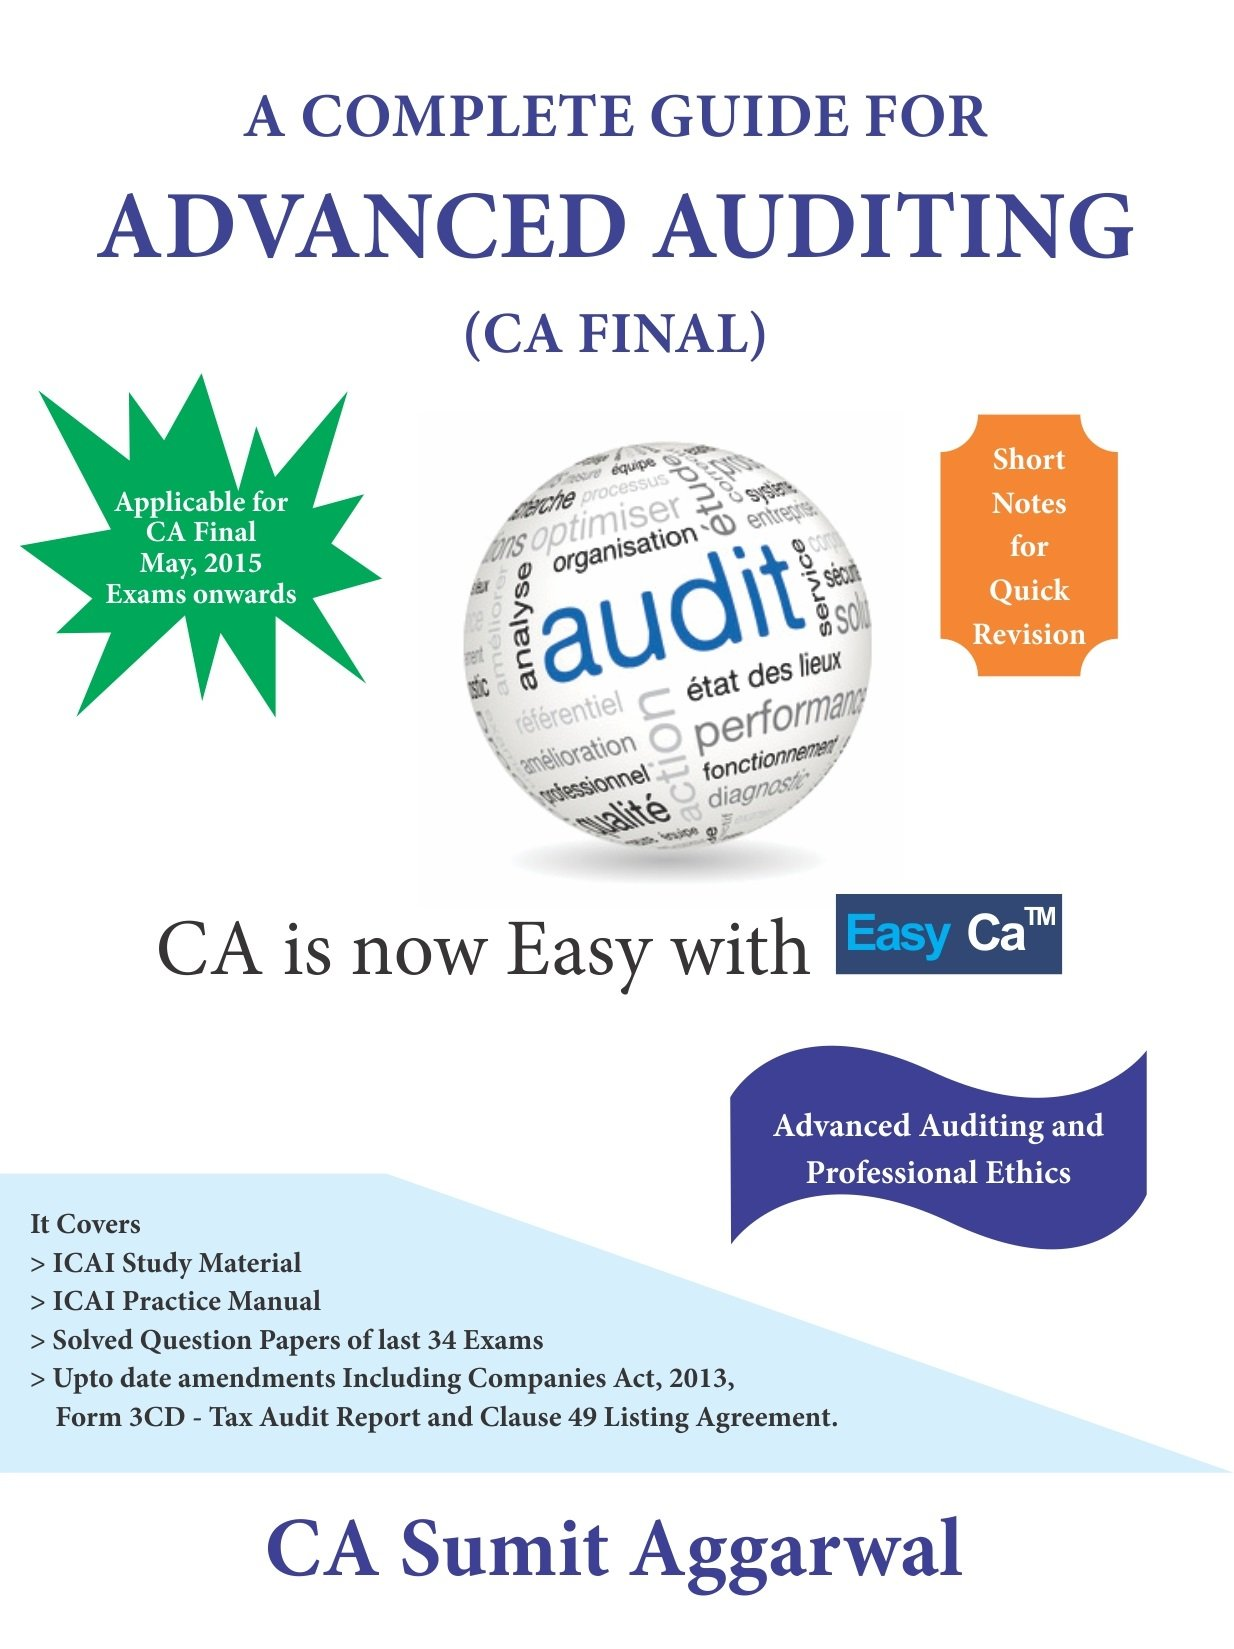 A Complete Guide for Advanced Auditing (CA Final): CA Sumit Aggarwal|CA  Amarjeet Chopra: 9789351964339: Amazon.com: Books